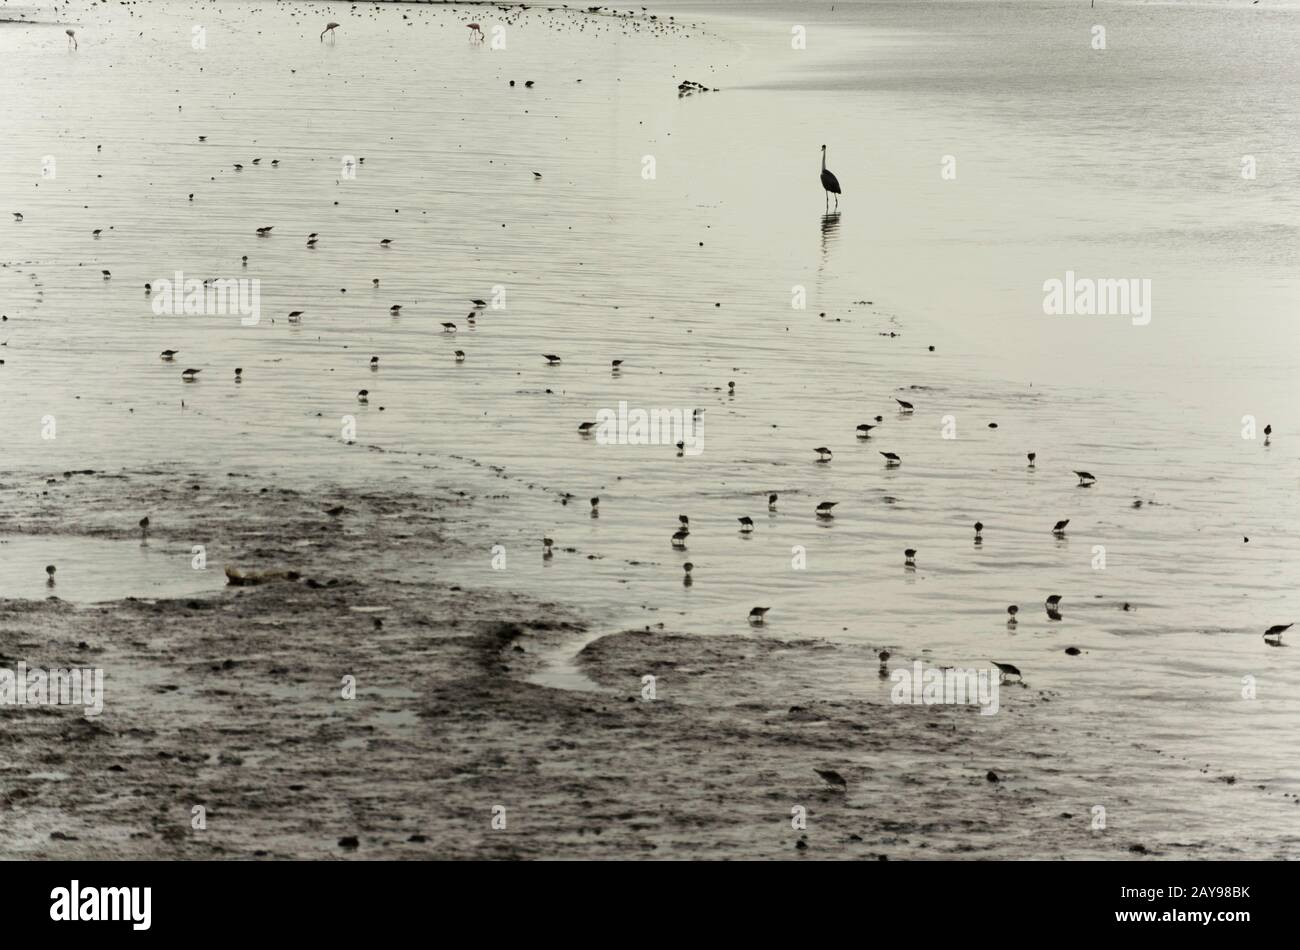 Sea birds in the sand on the beach at sunset, San Clemente del Tuyu, Buenos Aires, Argentina Stock Photo